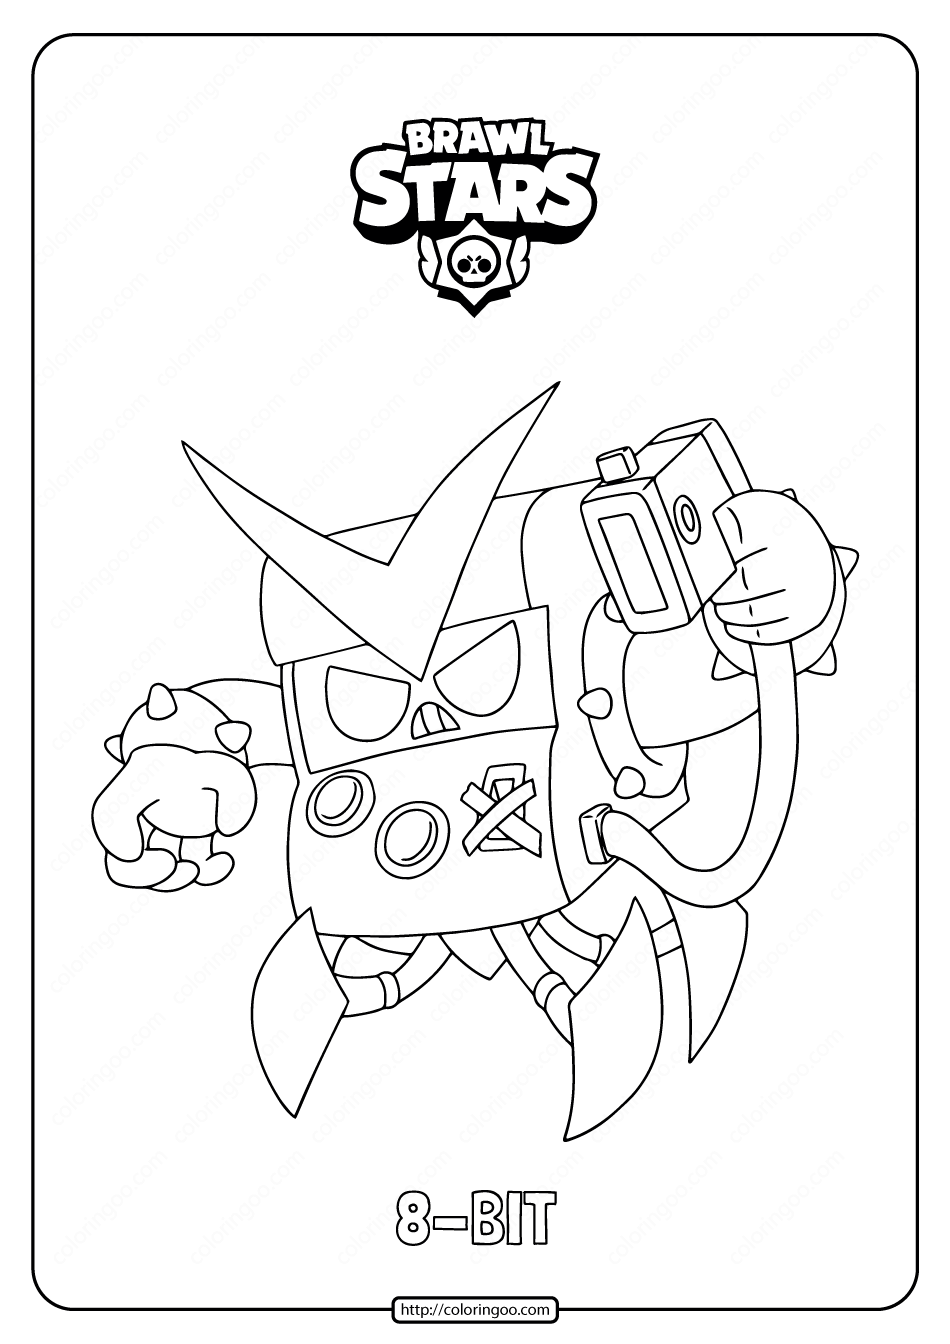 Free Printable Brawl Stars 8-BIT Coloring Pages